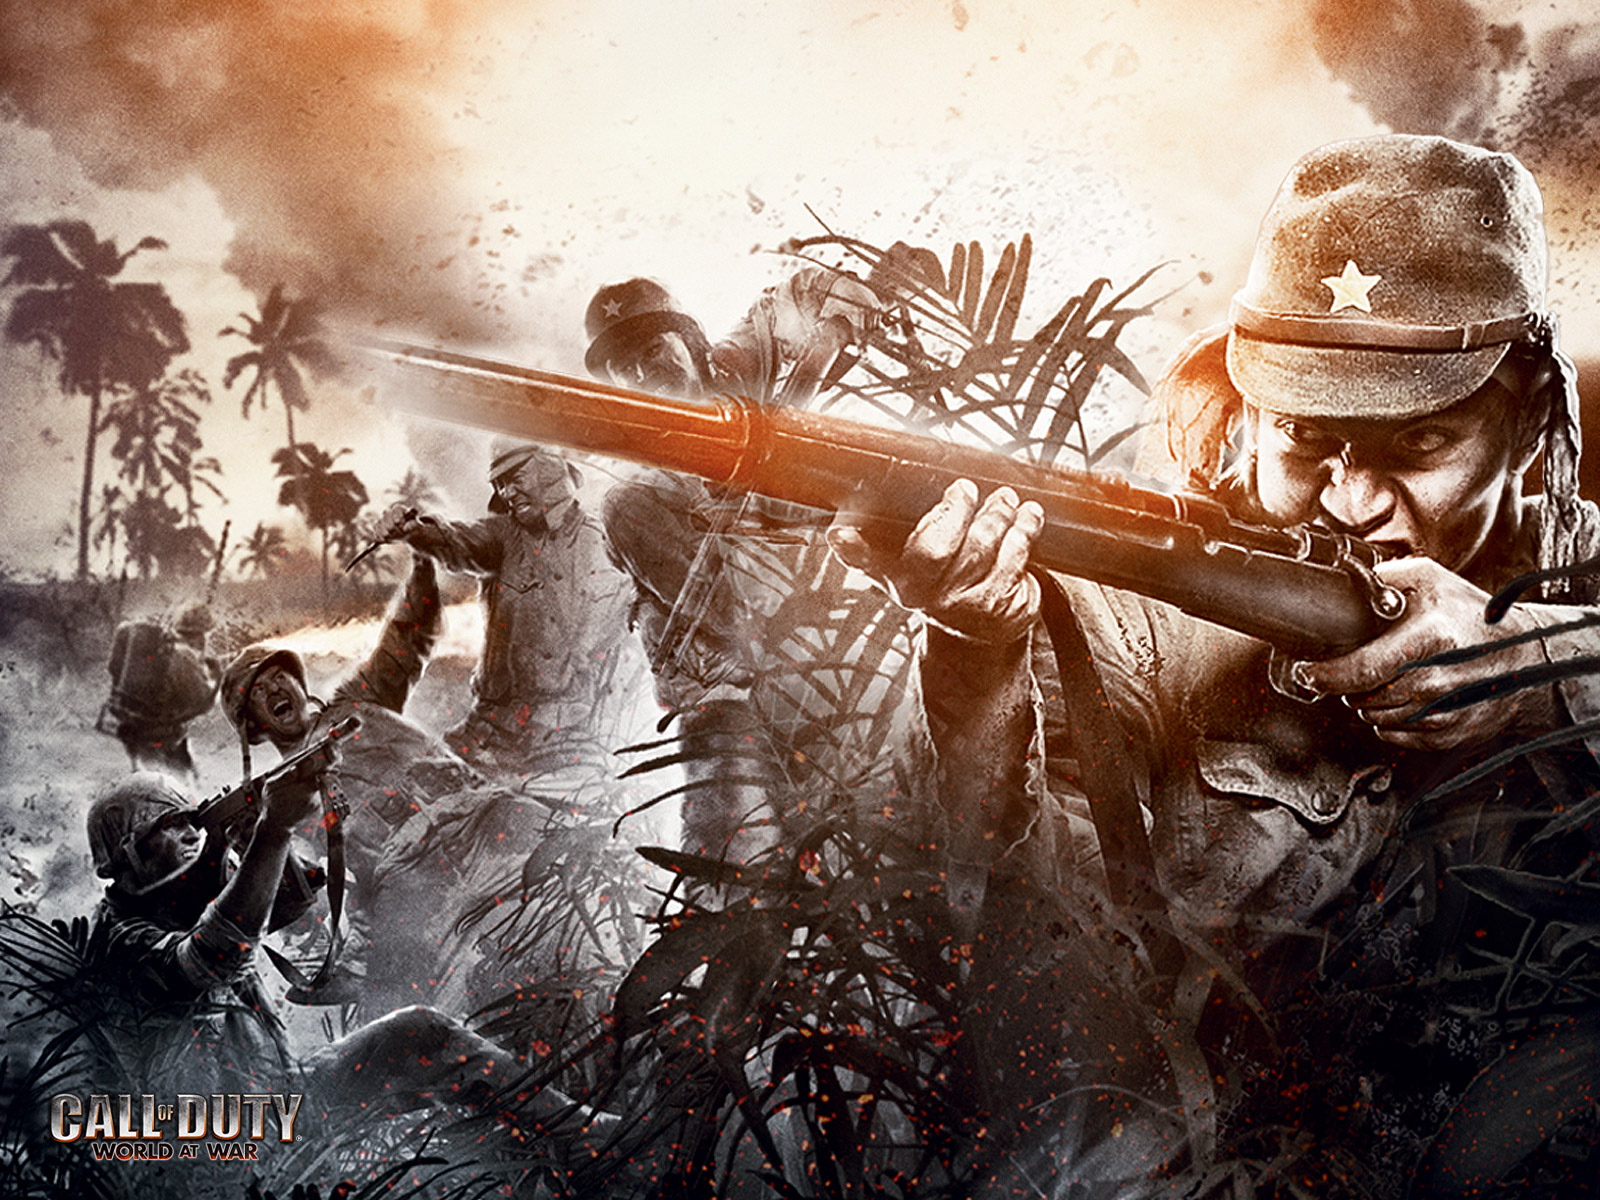 Hd wallpapers call of duty 5 world at war - Cod ww2 4k pc ...